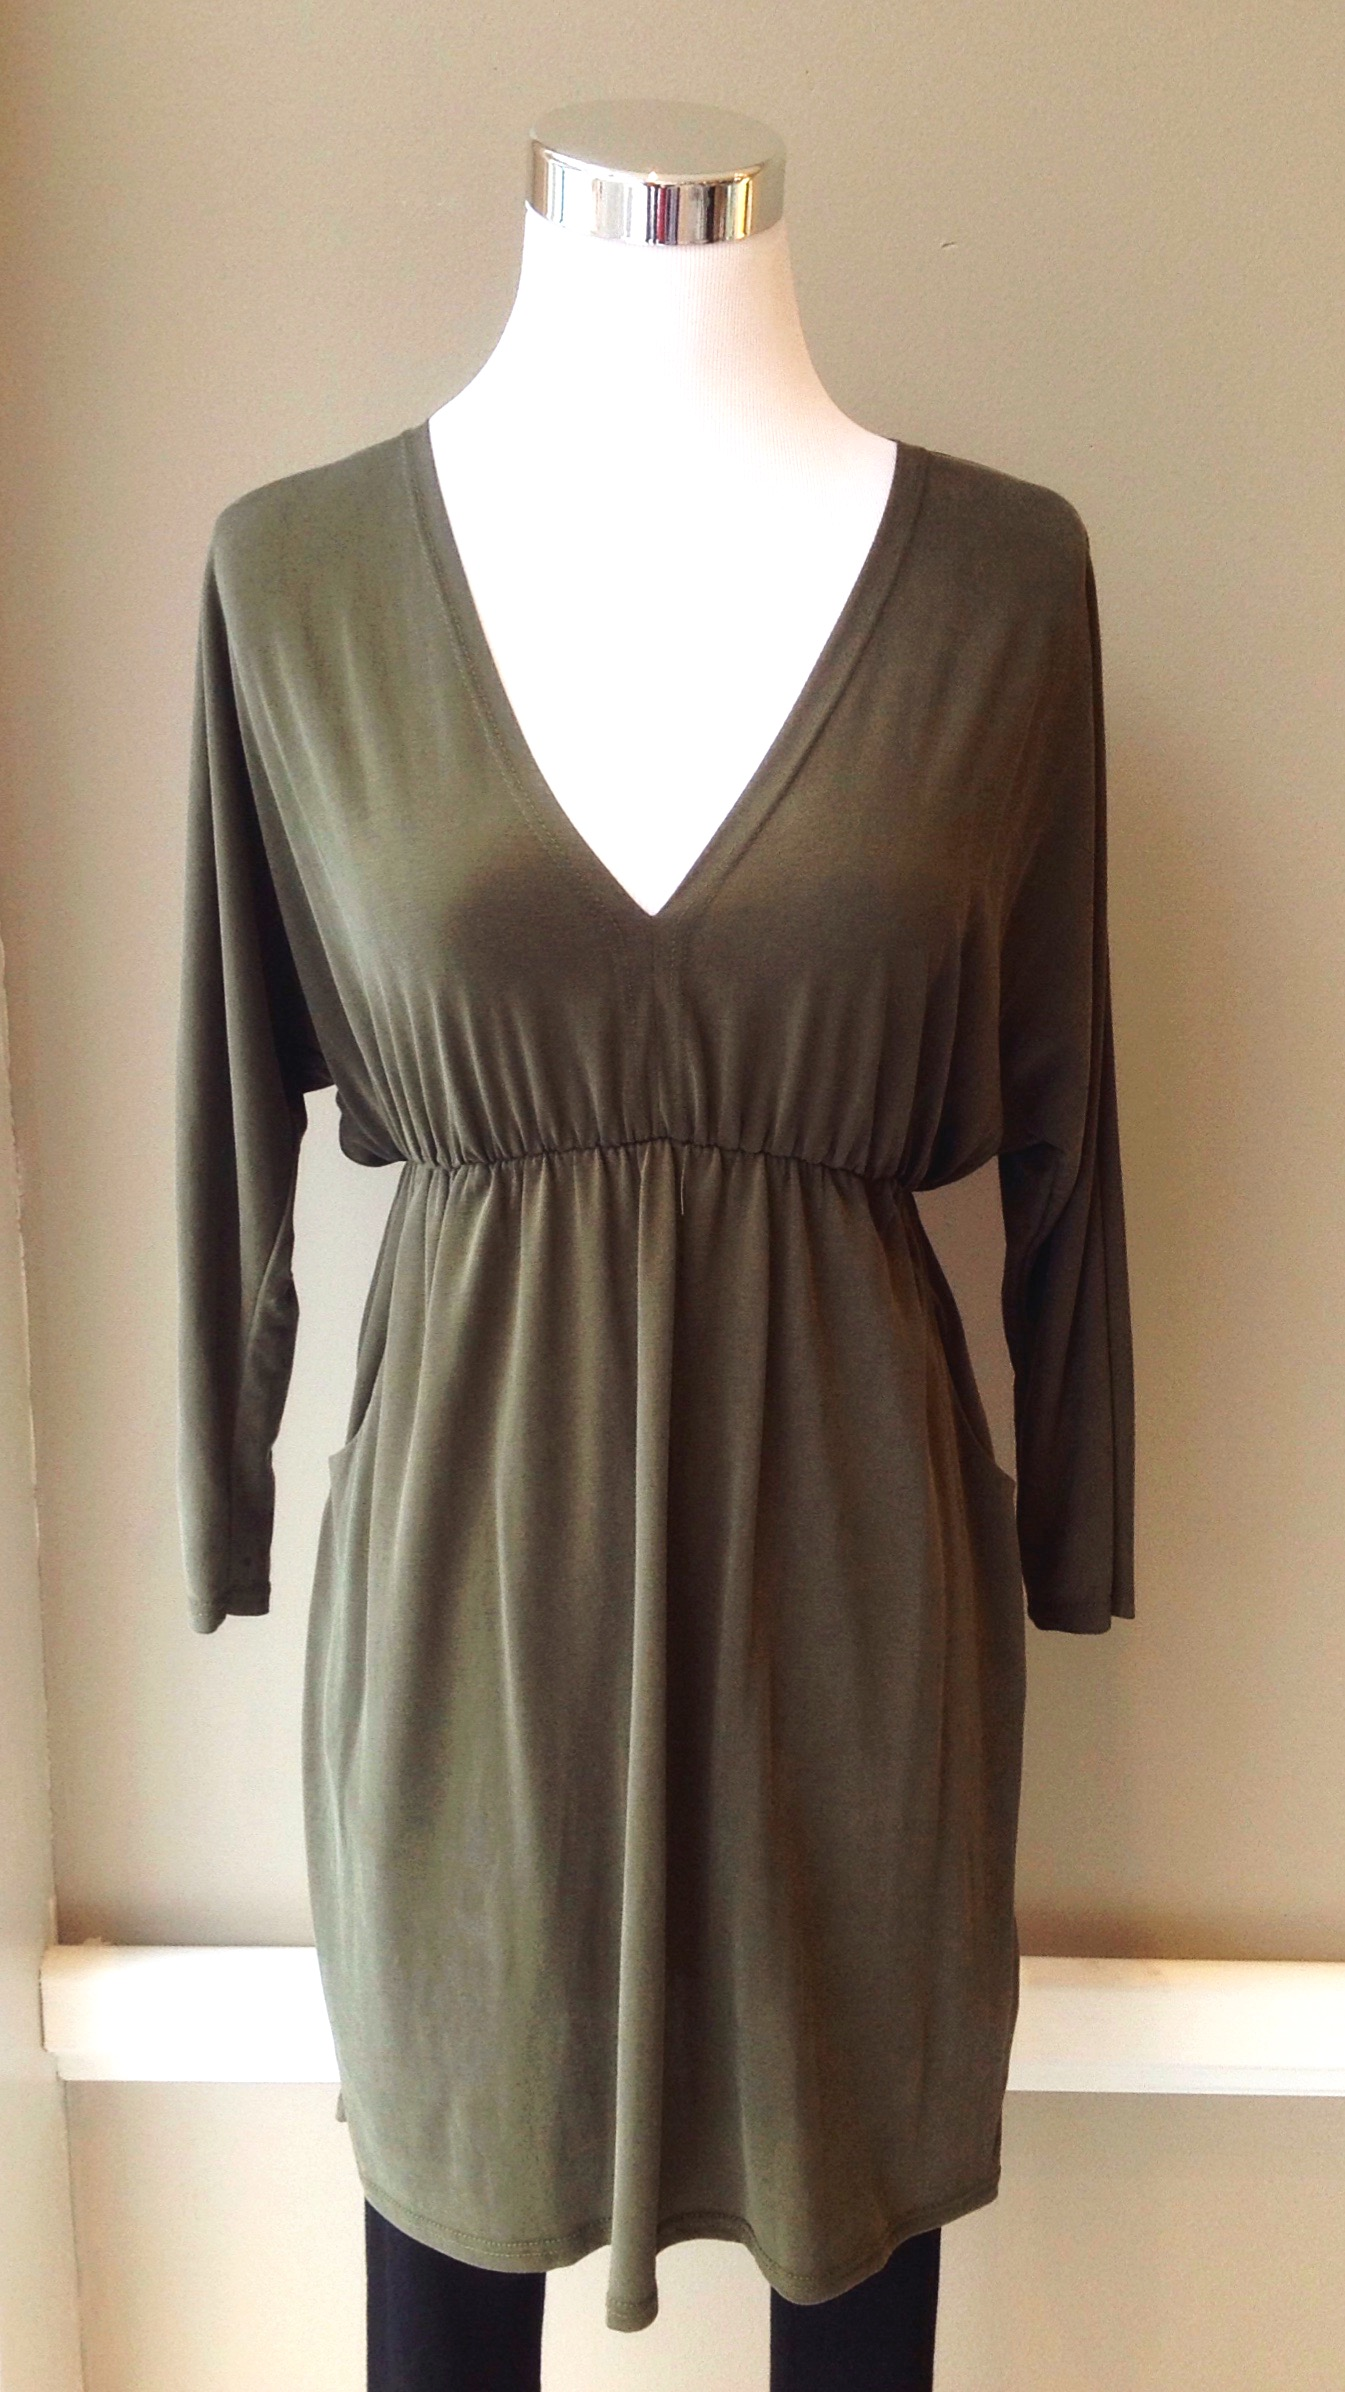 Woven tunic with gathered empire waist and side pockets in olive, $35